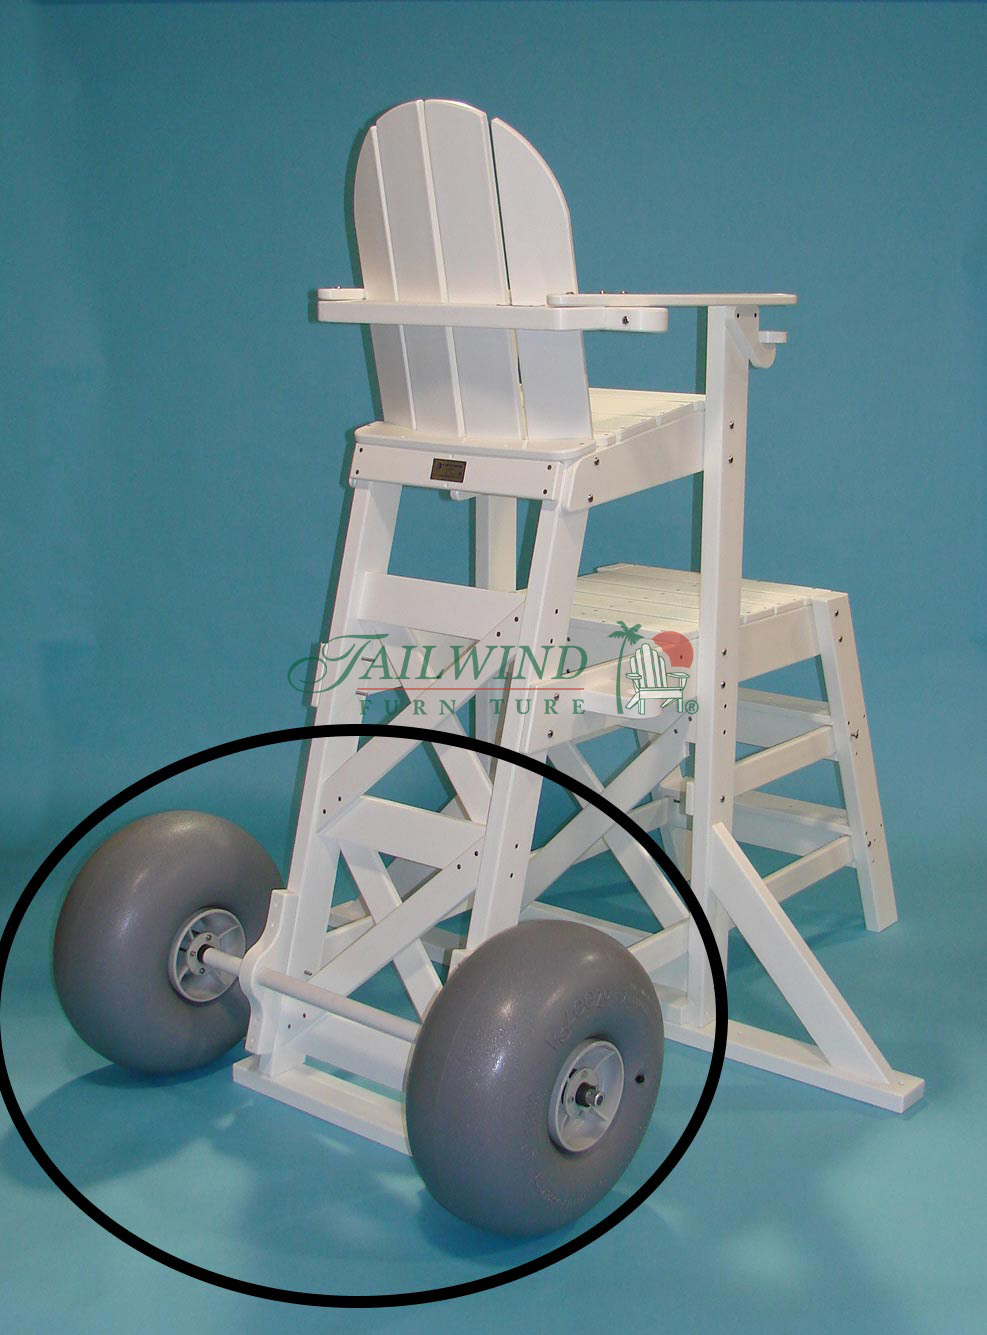 BCWH 563 Large Wheel Kit for all Tailwind Lifeguard Chairs  - (universal for all Tailwind lifeguard chairs)